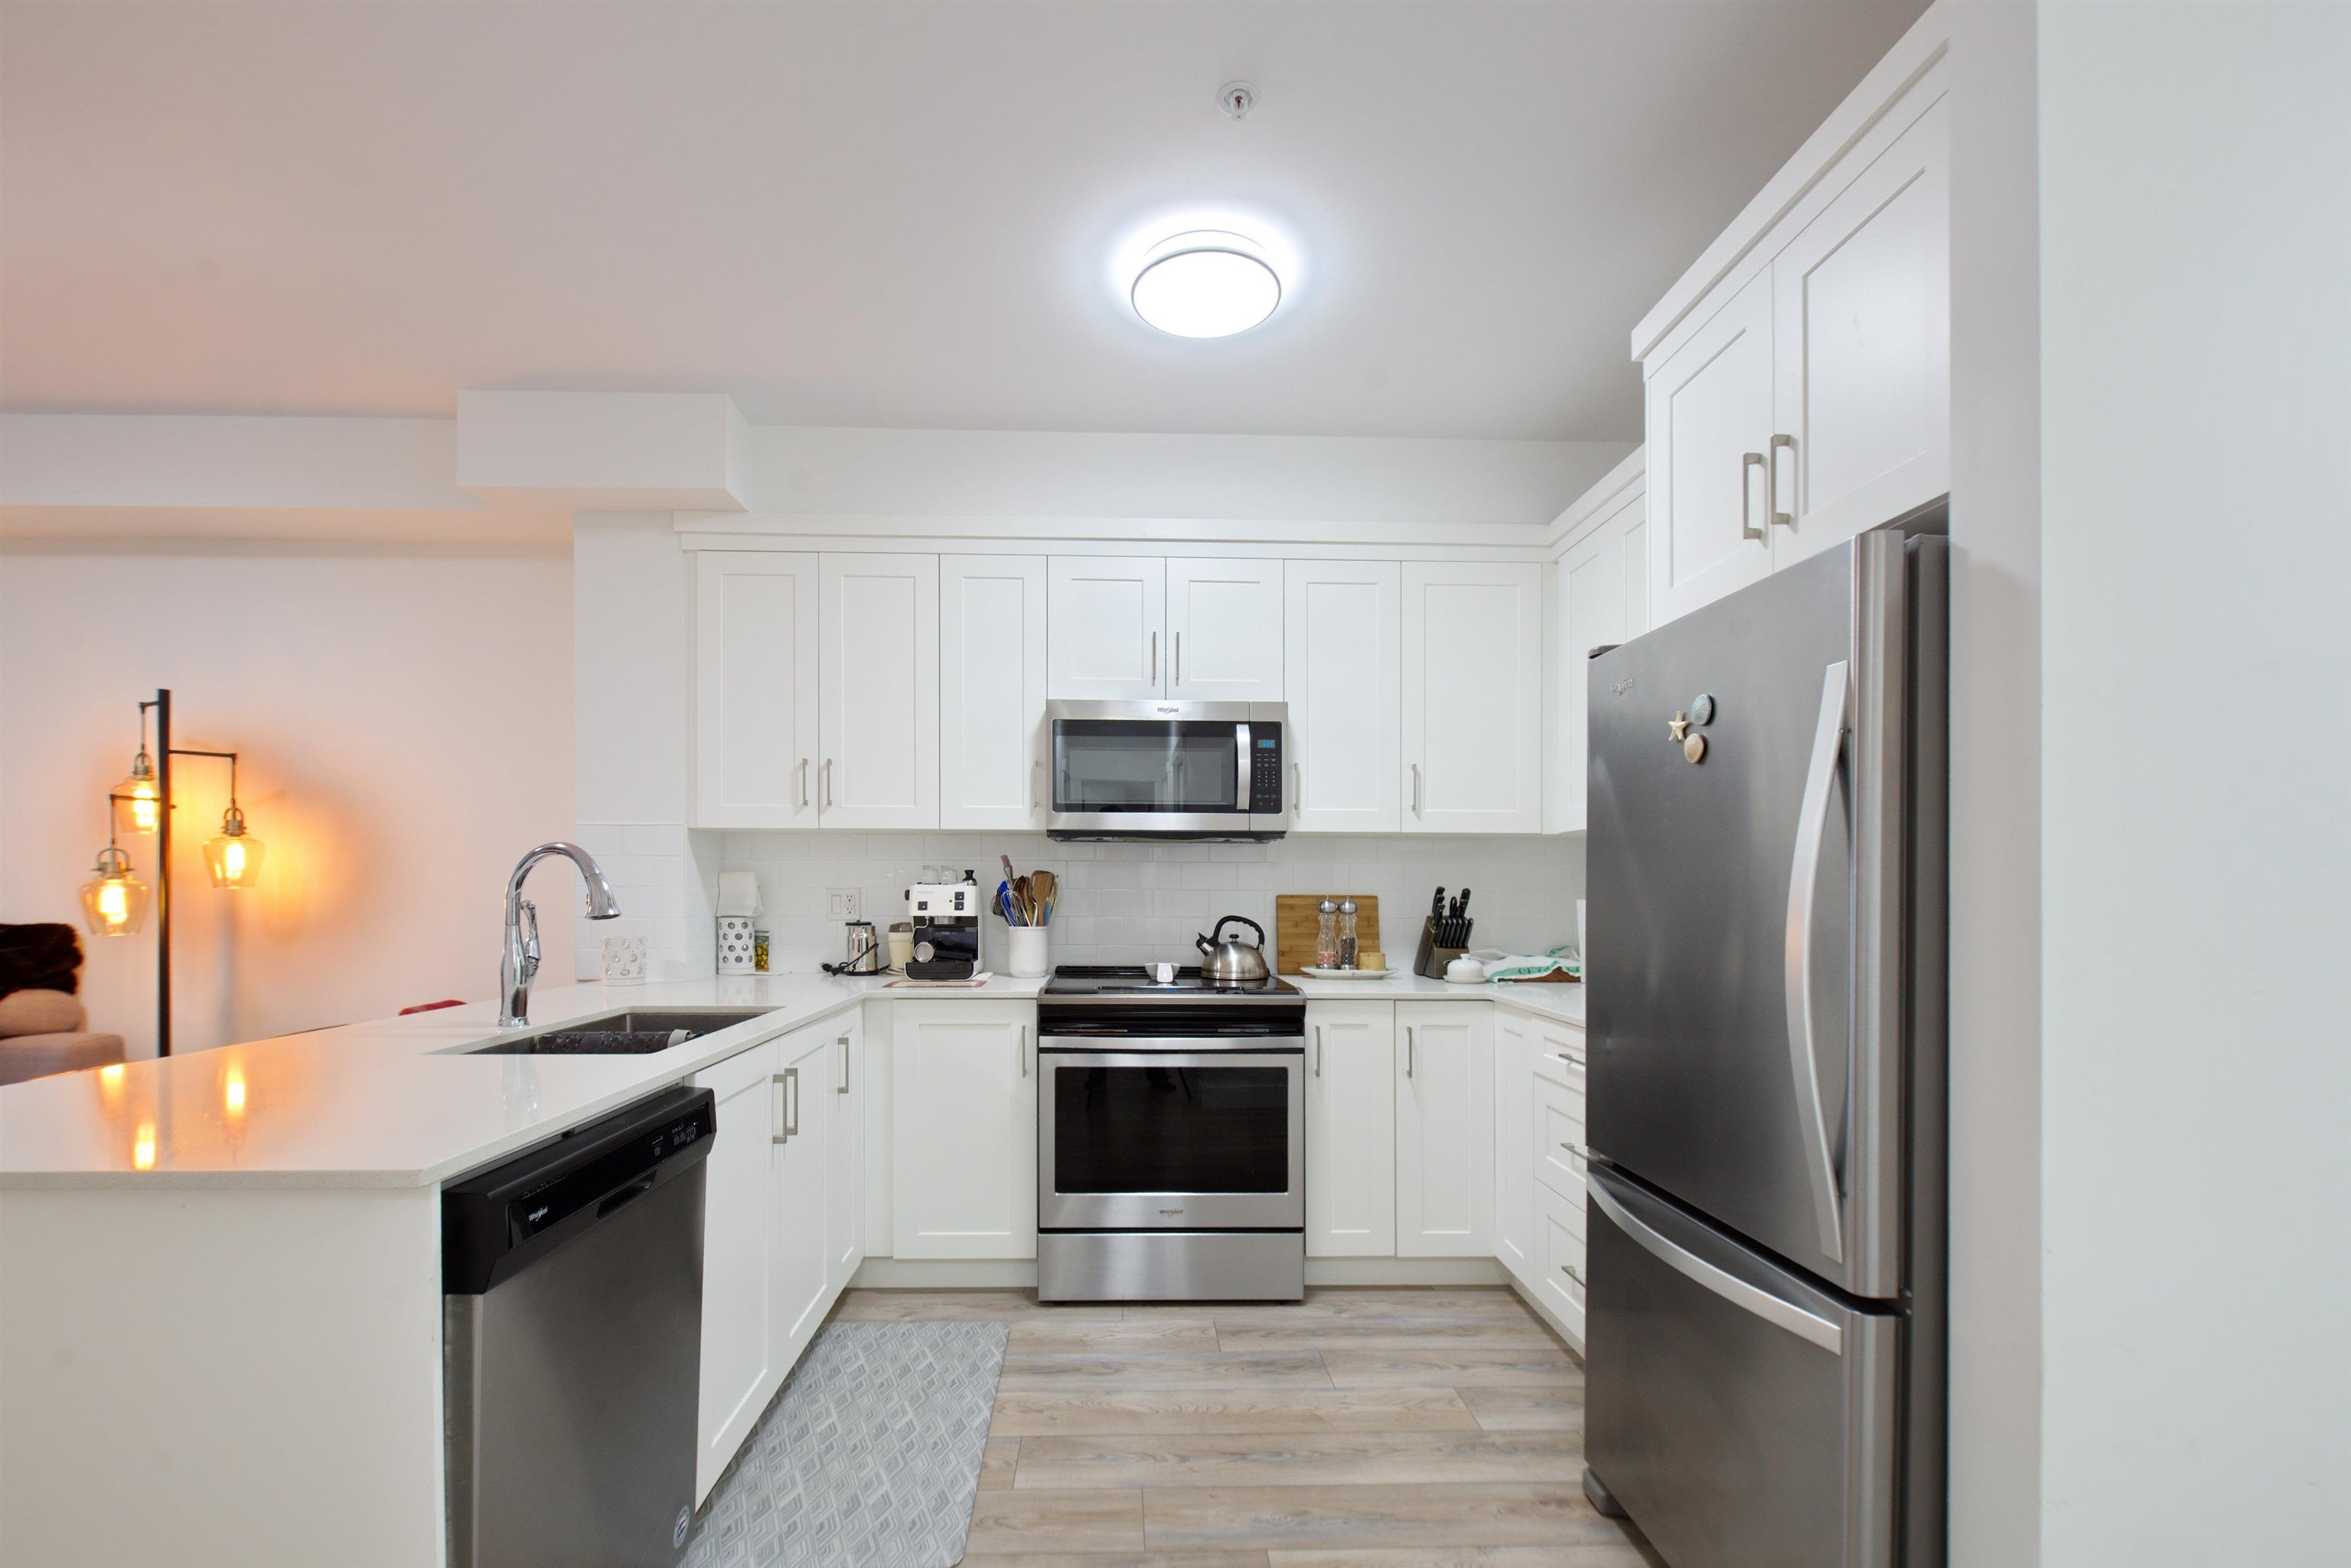 108 22577 ROYAL CRESCENT - East Central Apartment/Condo for sale, 2 Bedrooms (R2625662) - #9